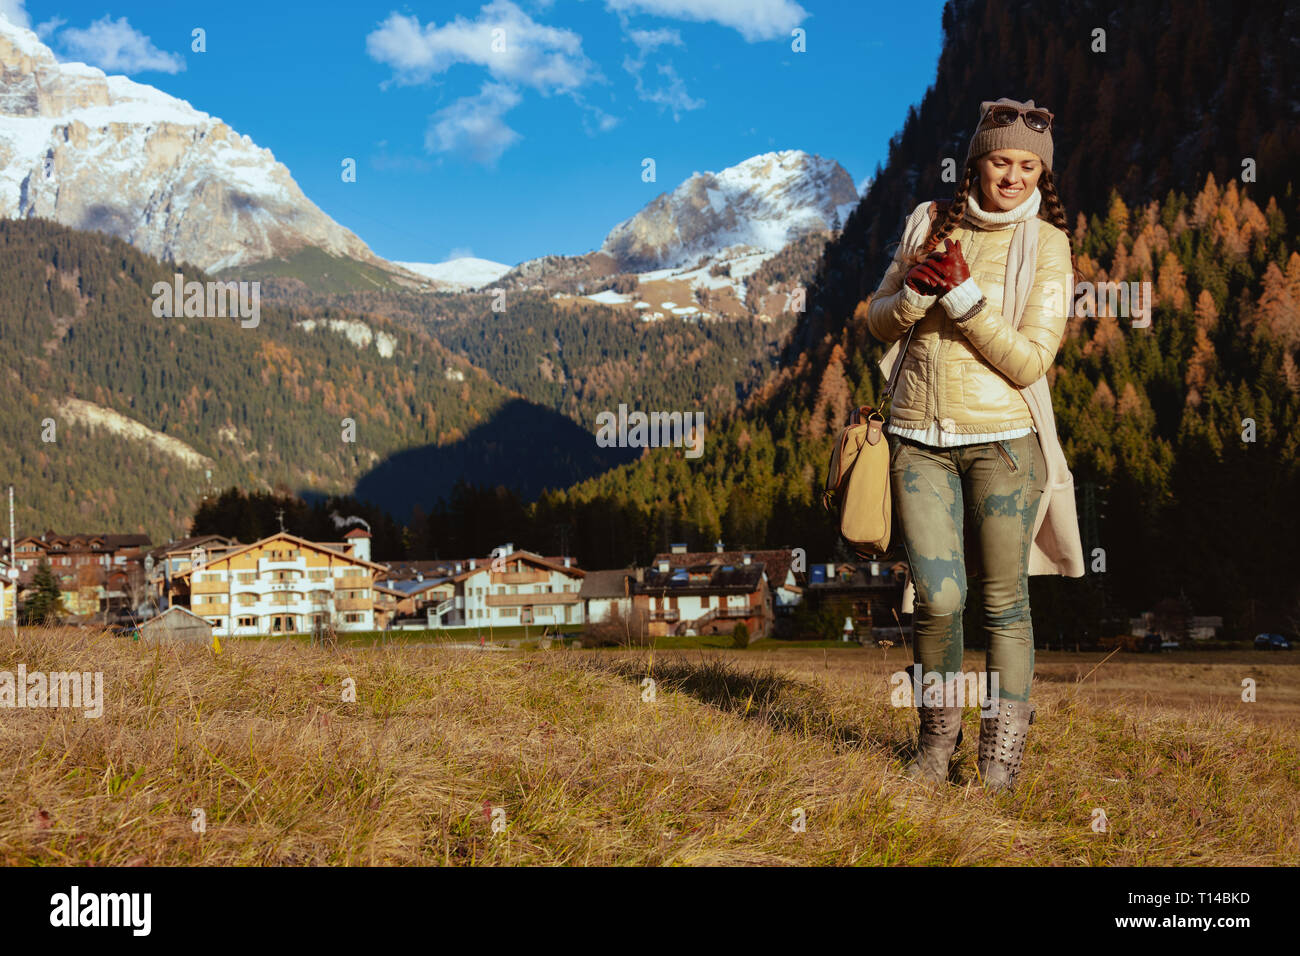 happy adventure woman hiker in hiking gear with bag enjoying promenade against mountain scenery in South Tyrol, Italy. - Stock Image